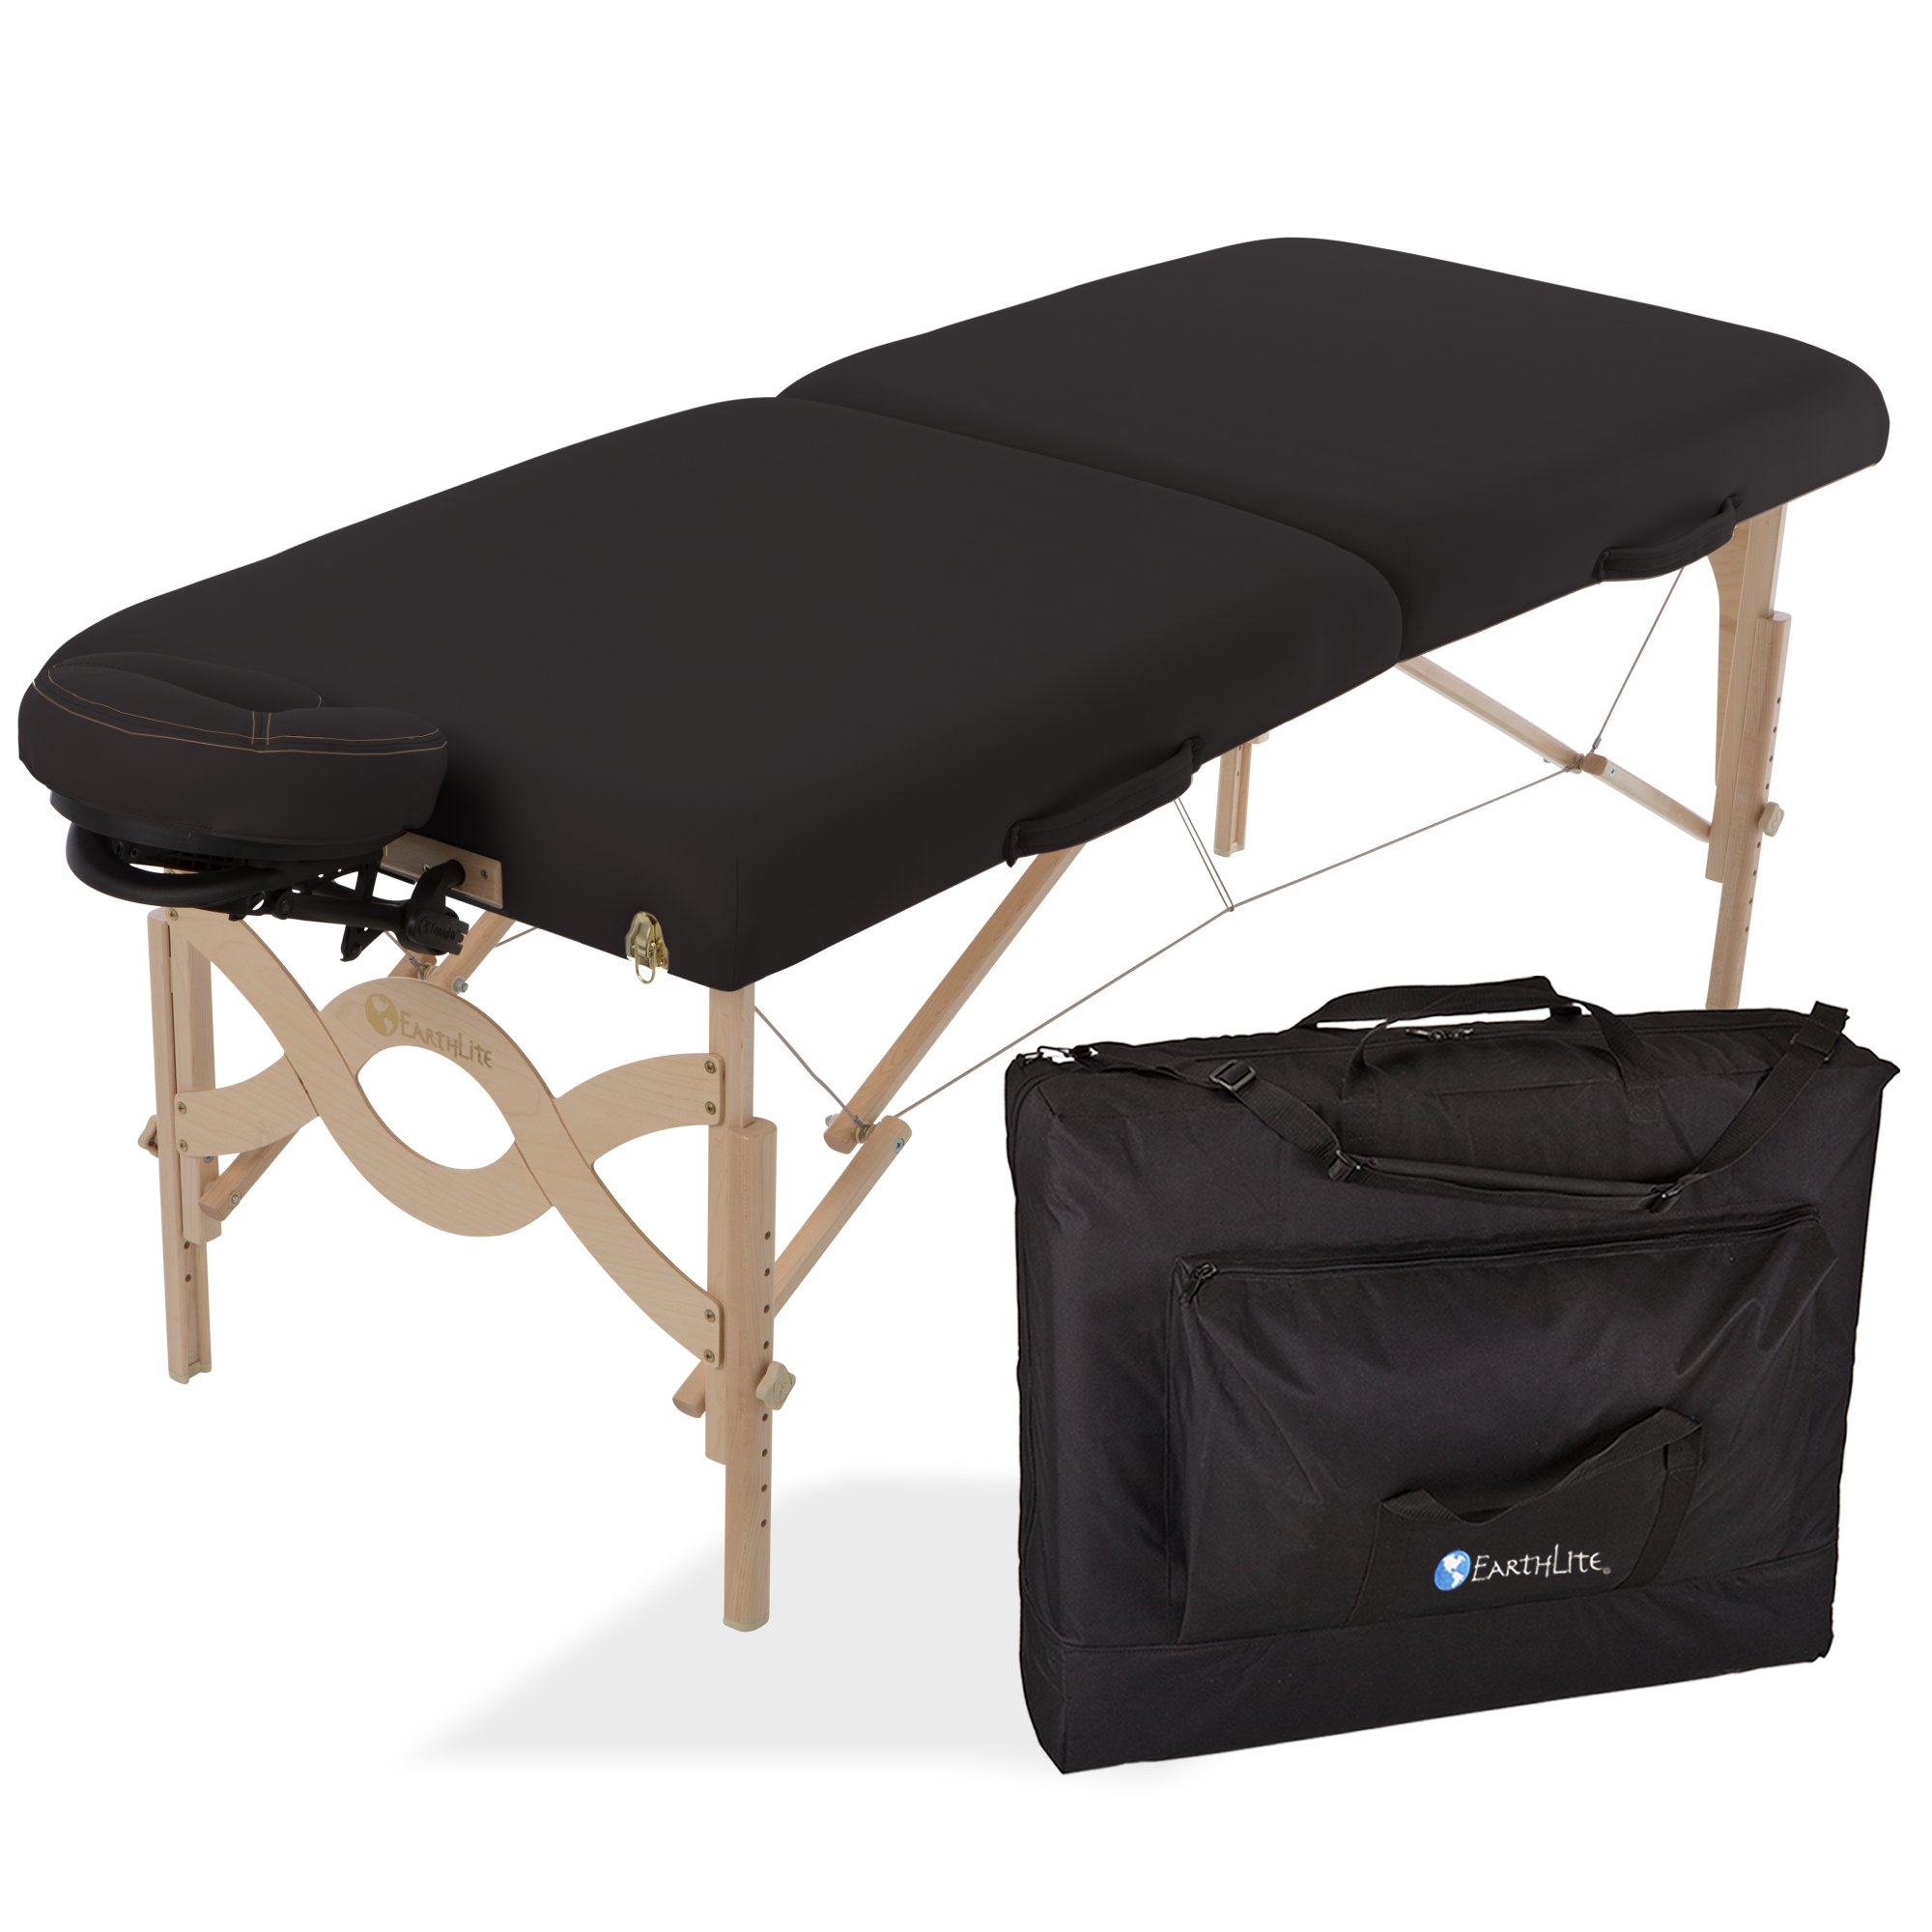 EARTHLITE Avalon XD Massage Therapy Table Package Flat - Premium Value & Style, Professional Massage Table Portable incl. Flex-Rest Face Cradle and Carry Case